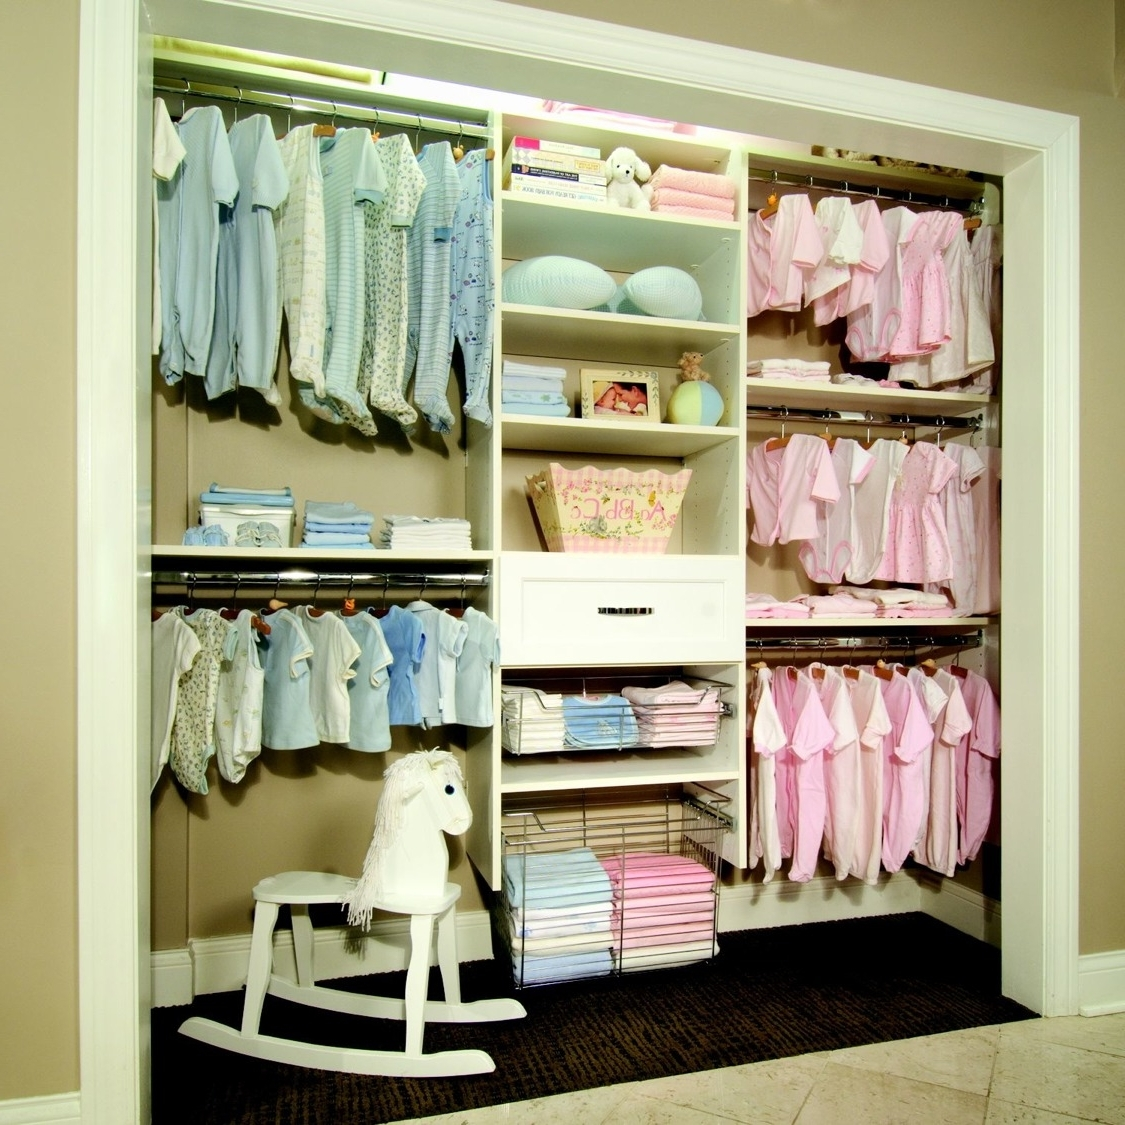 Most Organized Baby Closet I've Ever Seen (View 4 of 15)